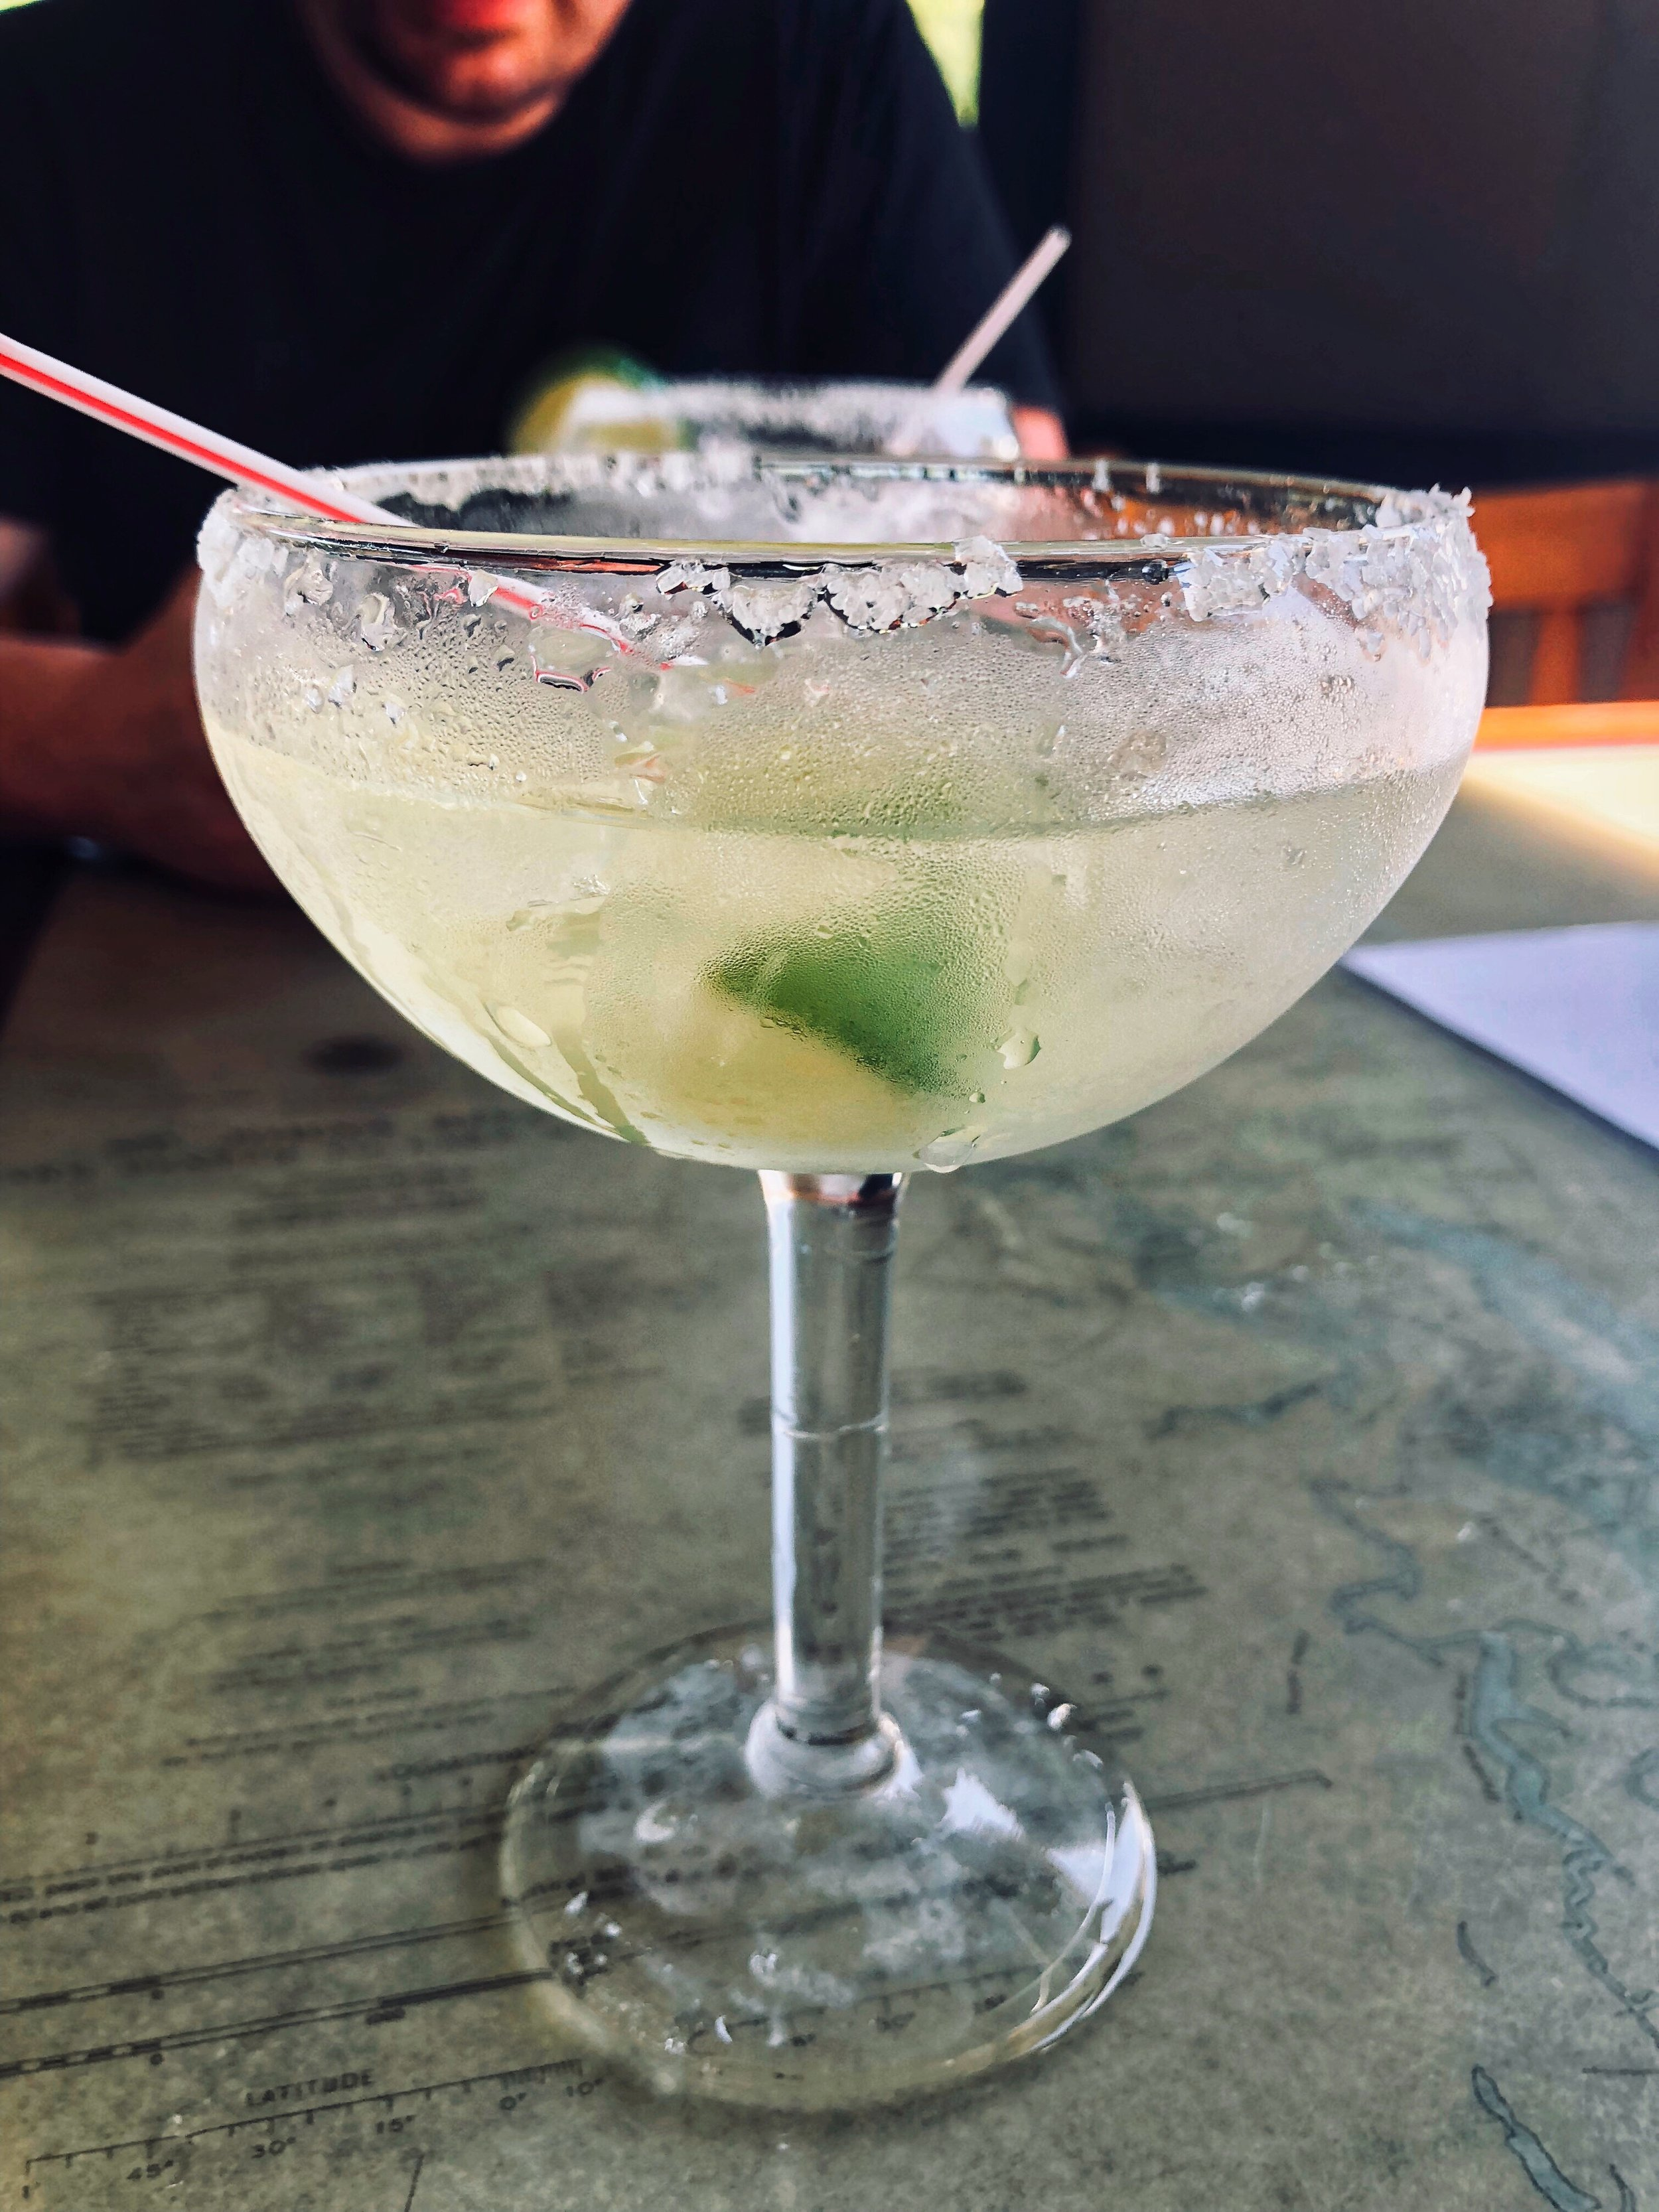 That's the sizable margarita from the Main Street Pub & Cafe for $3 and change.